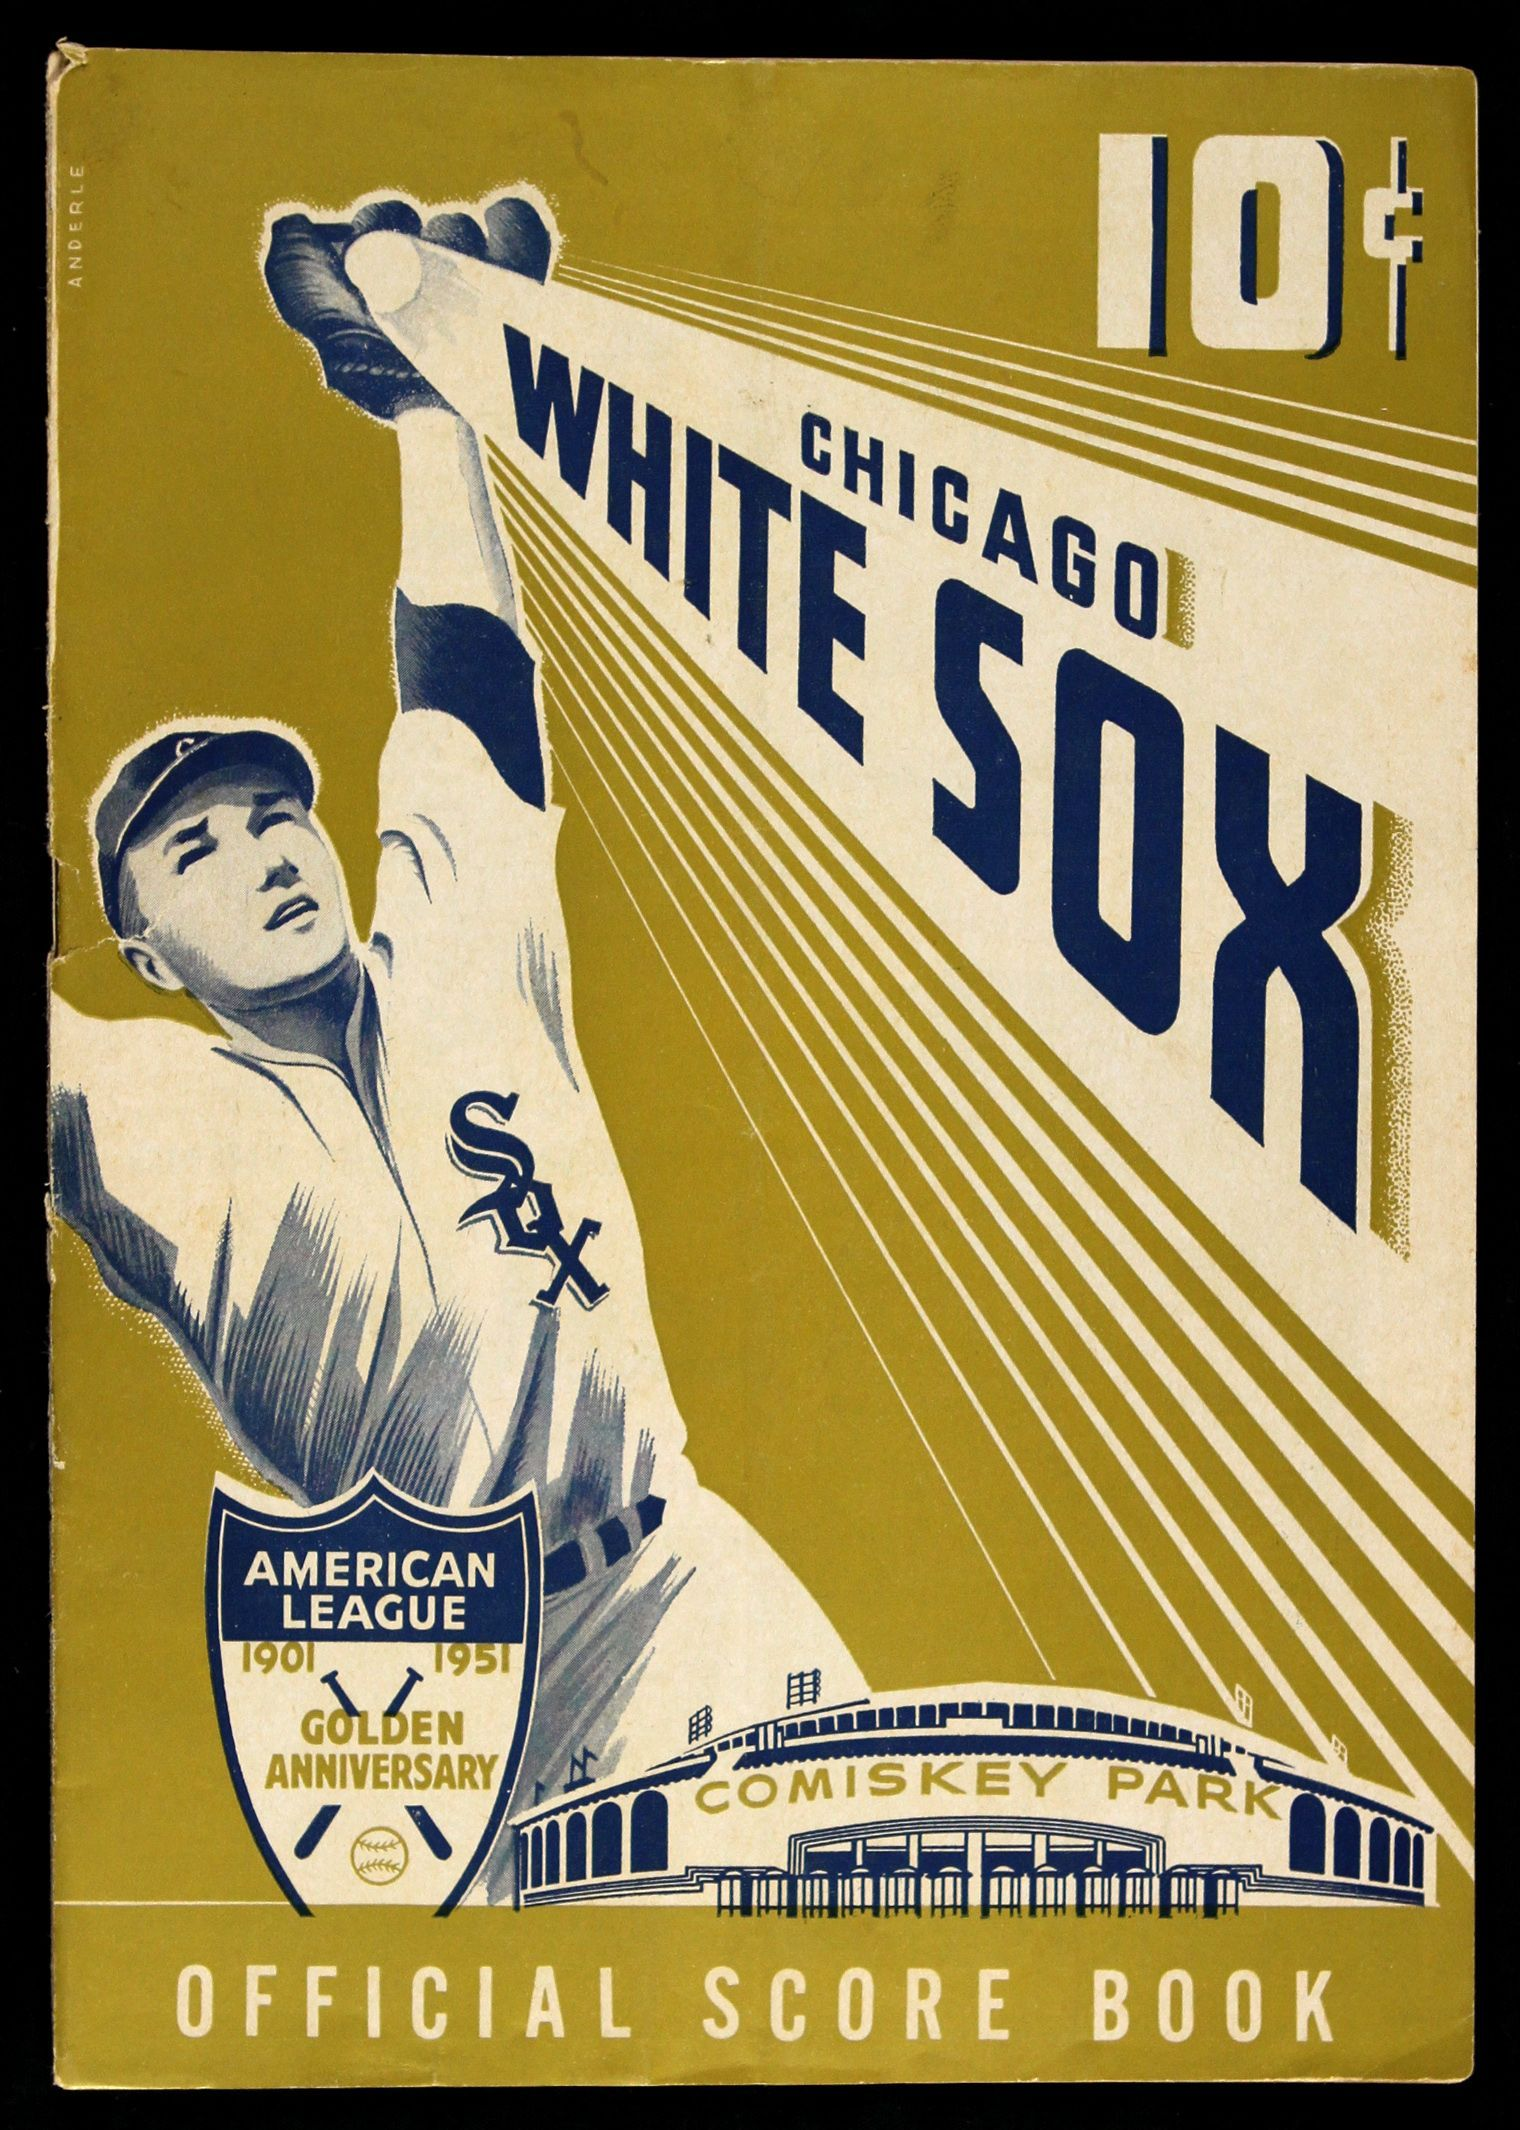 951 Chicago White Sox New York Yankees program | Baseball ...